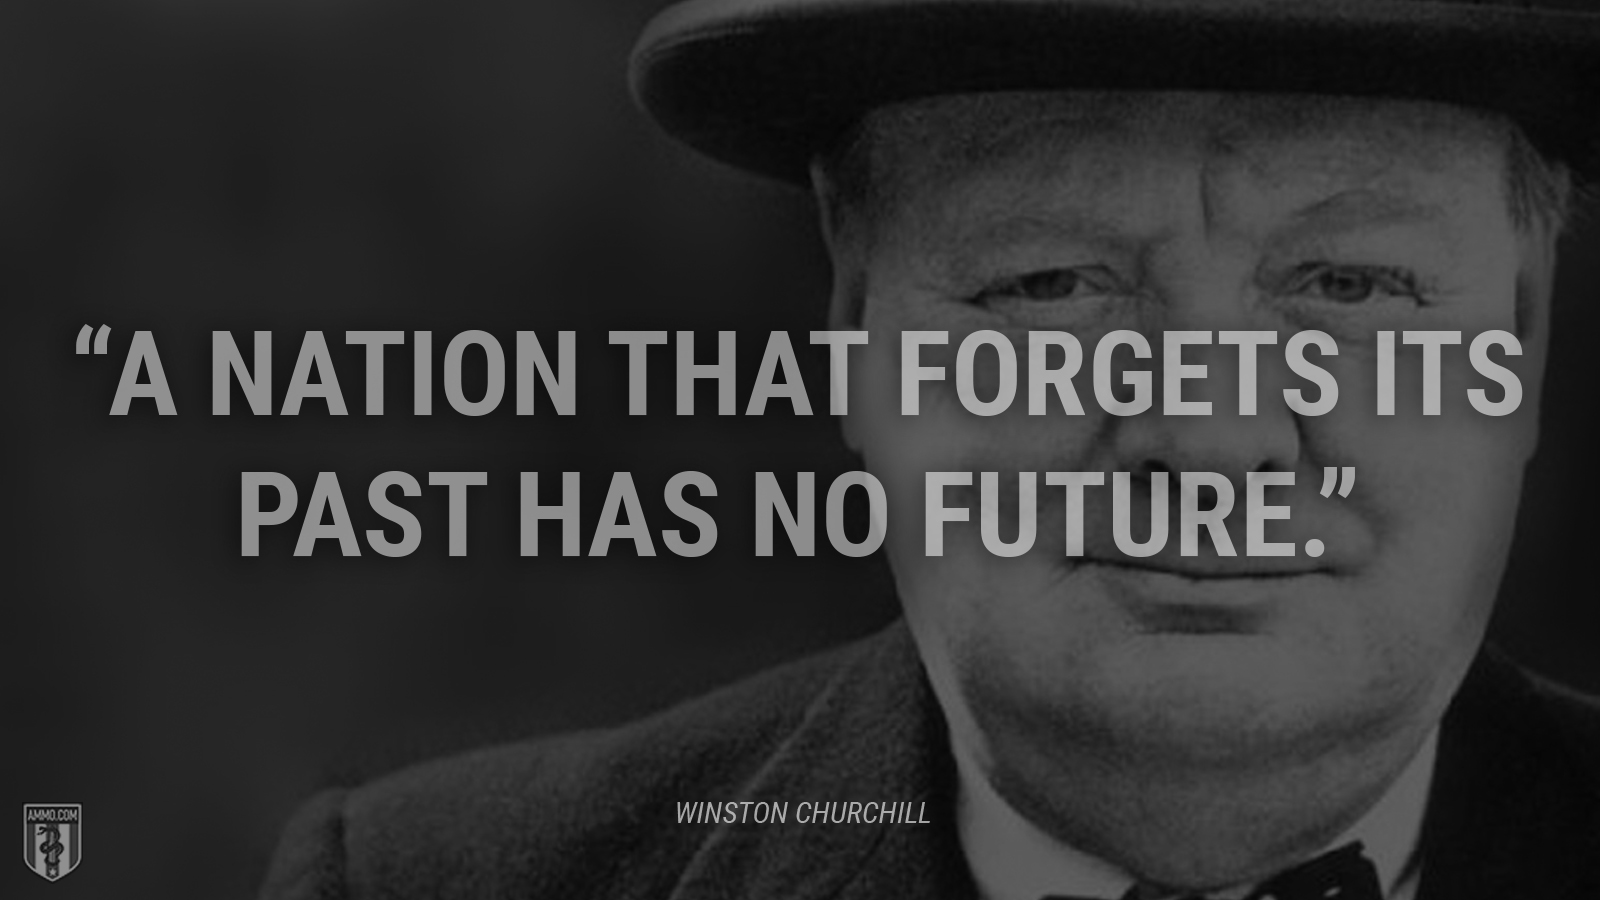 """A nation that forgets its past has no future."" - Winston Churchill"